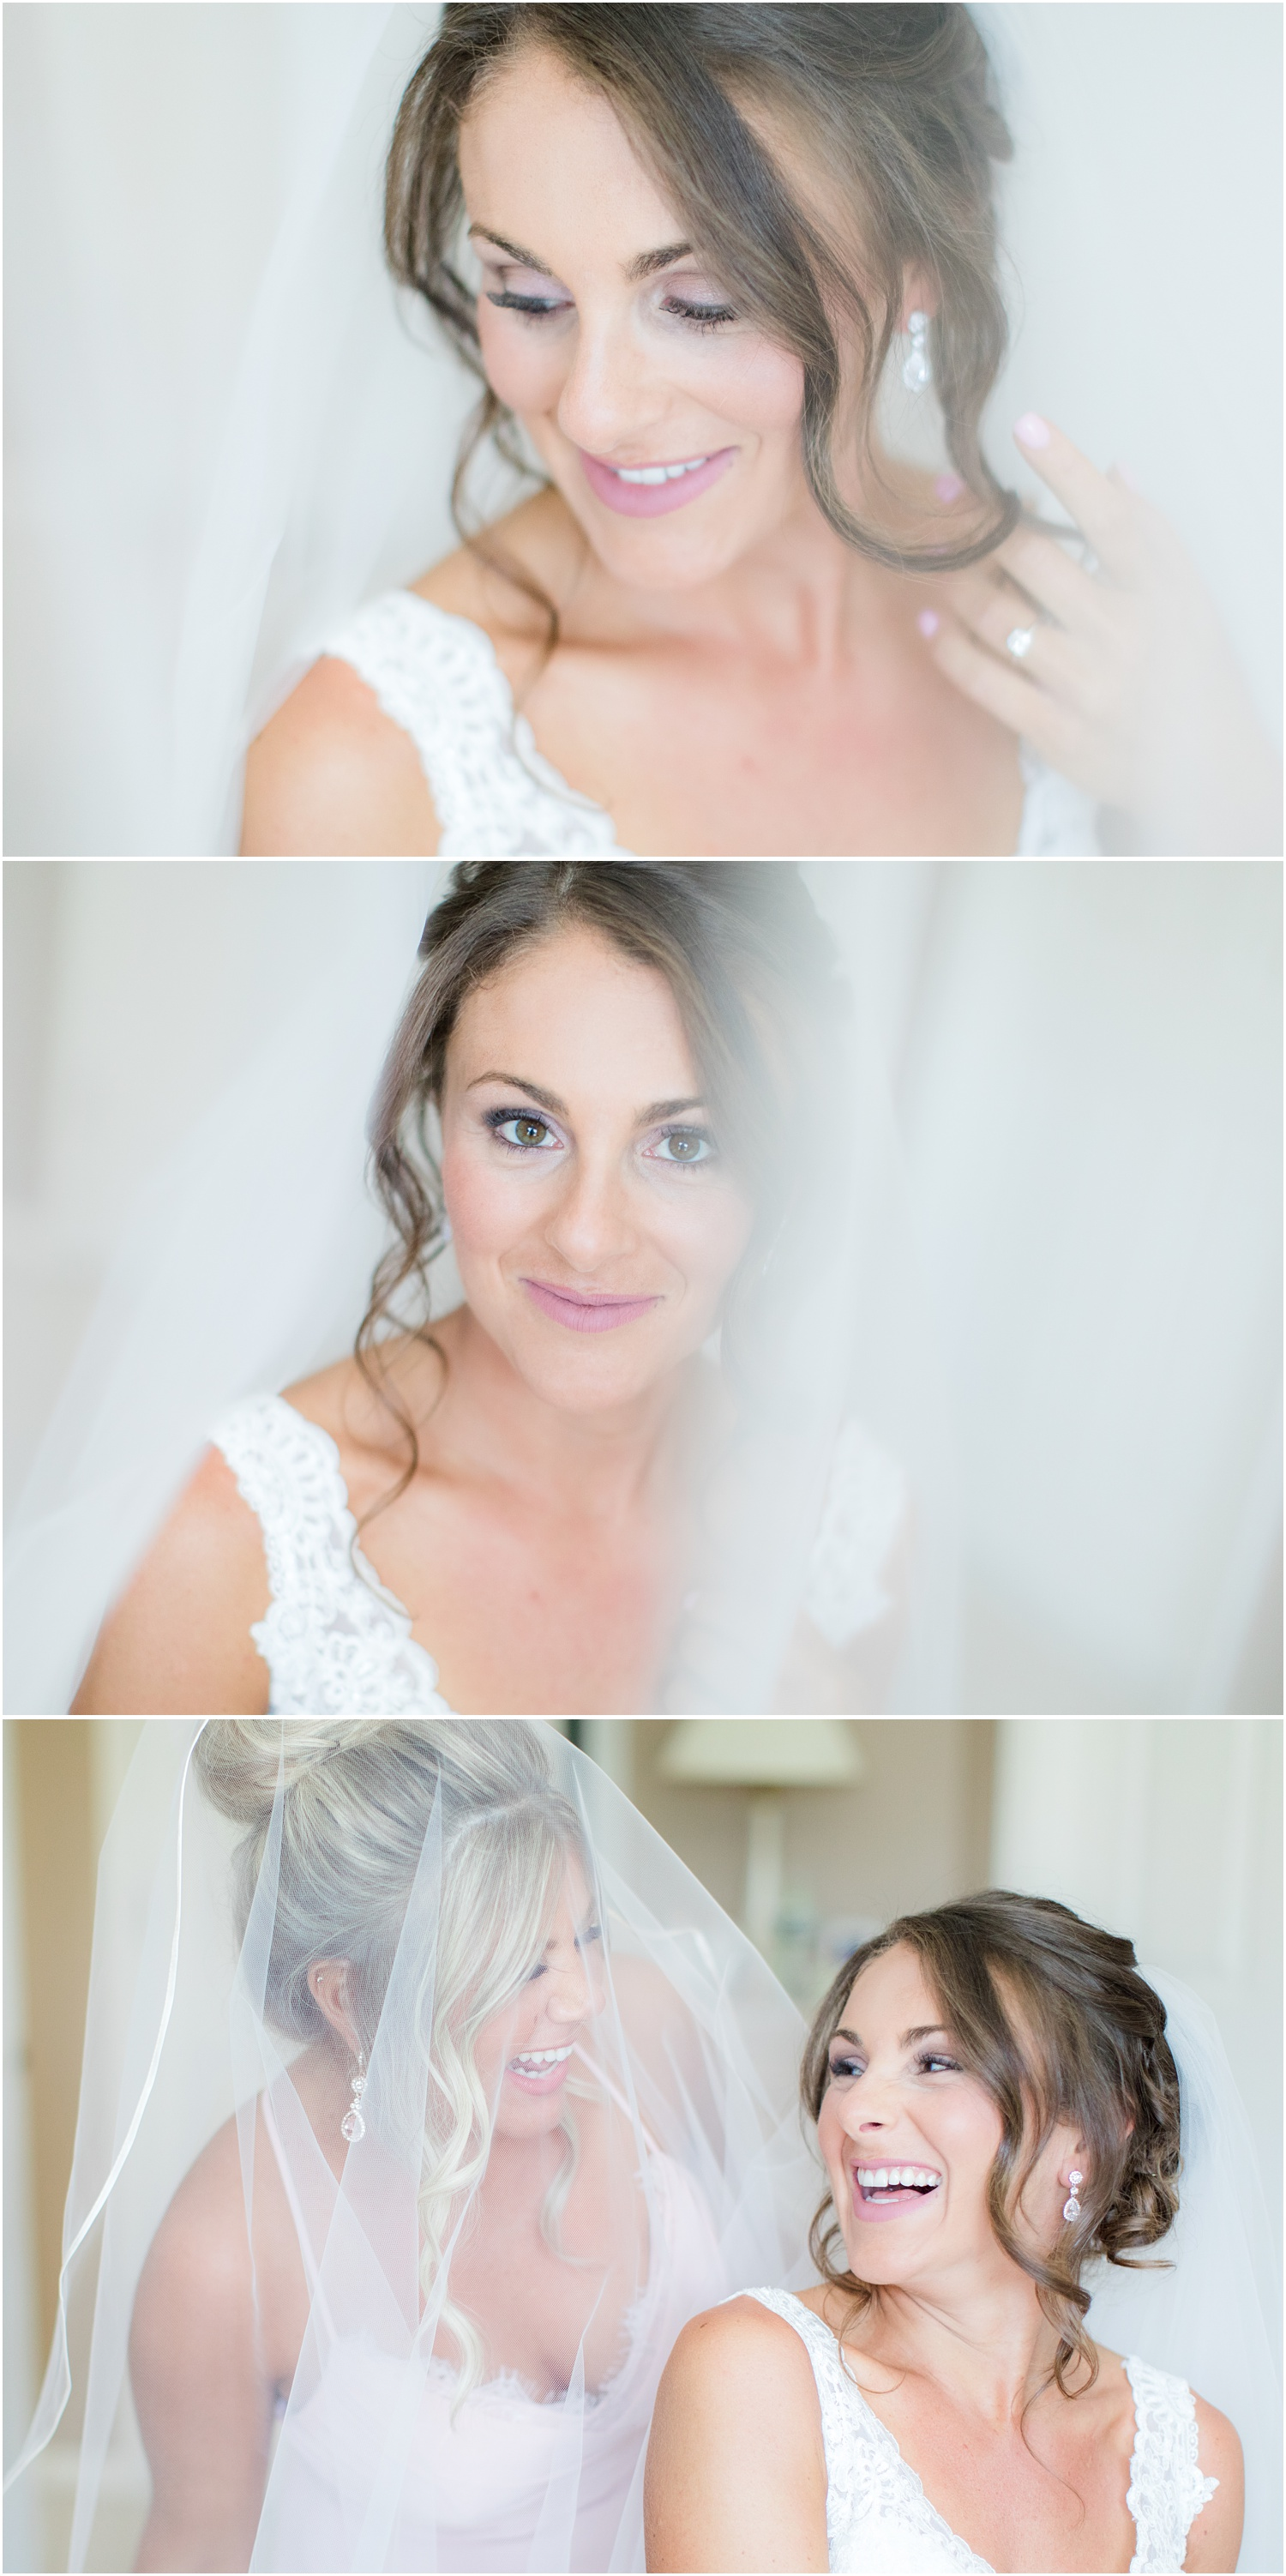 Bridal photos with veil while getting ready in Brick, NJ.